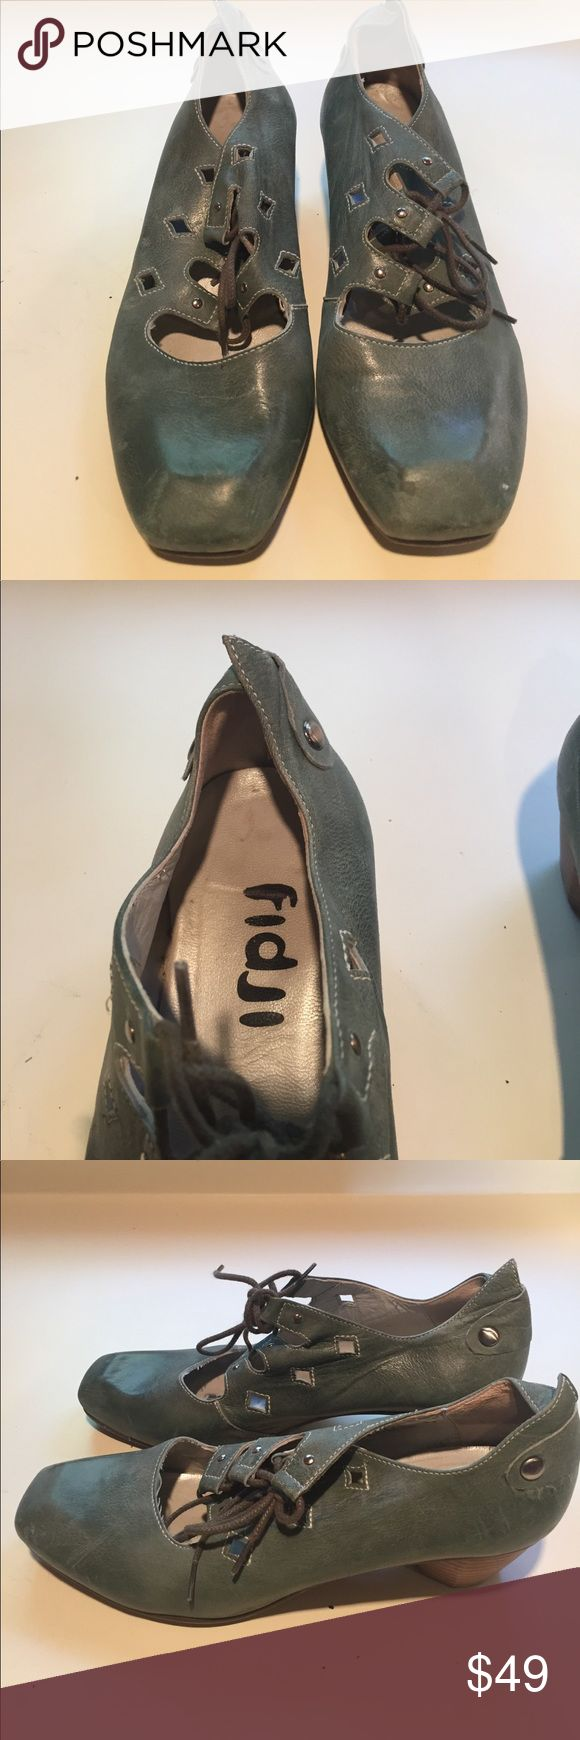 Fidji shoes Worn once, pristine condition, made in Portugal fidji Shoes Heels